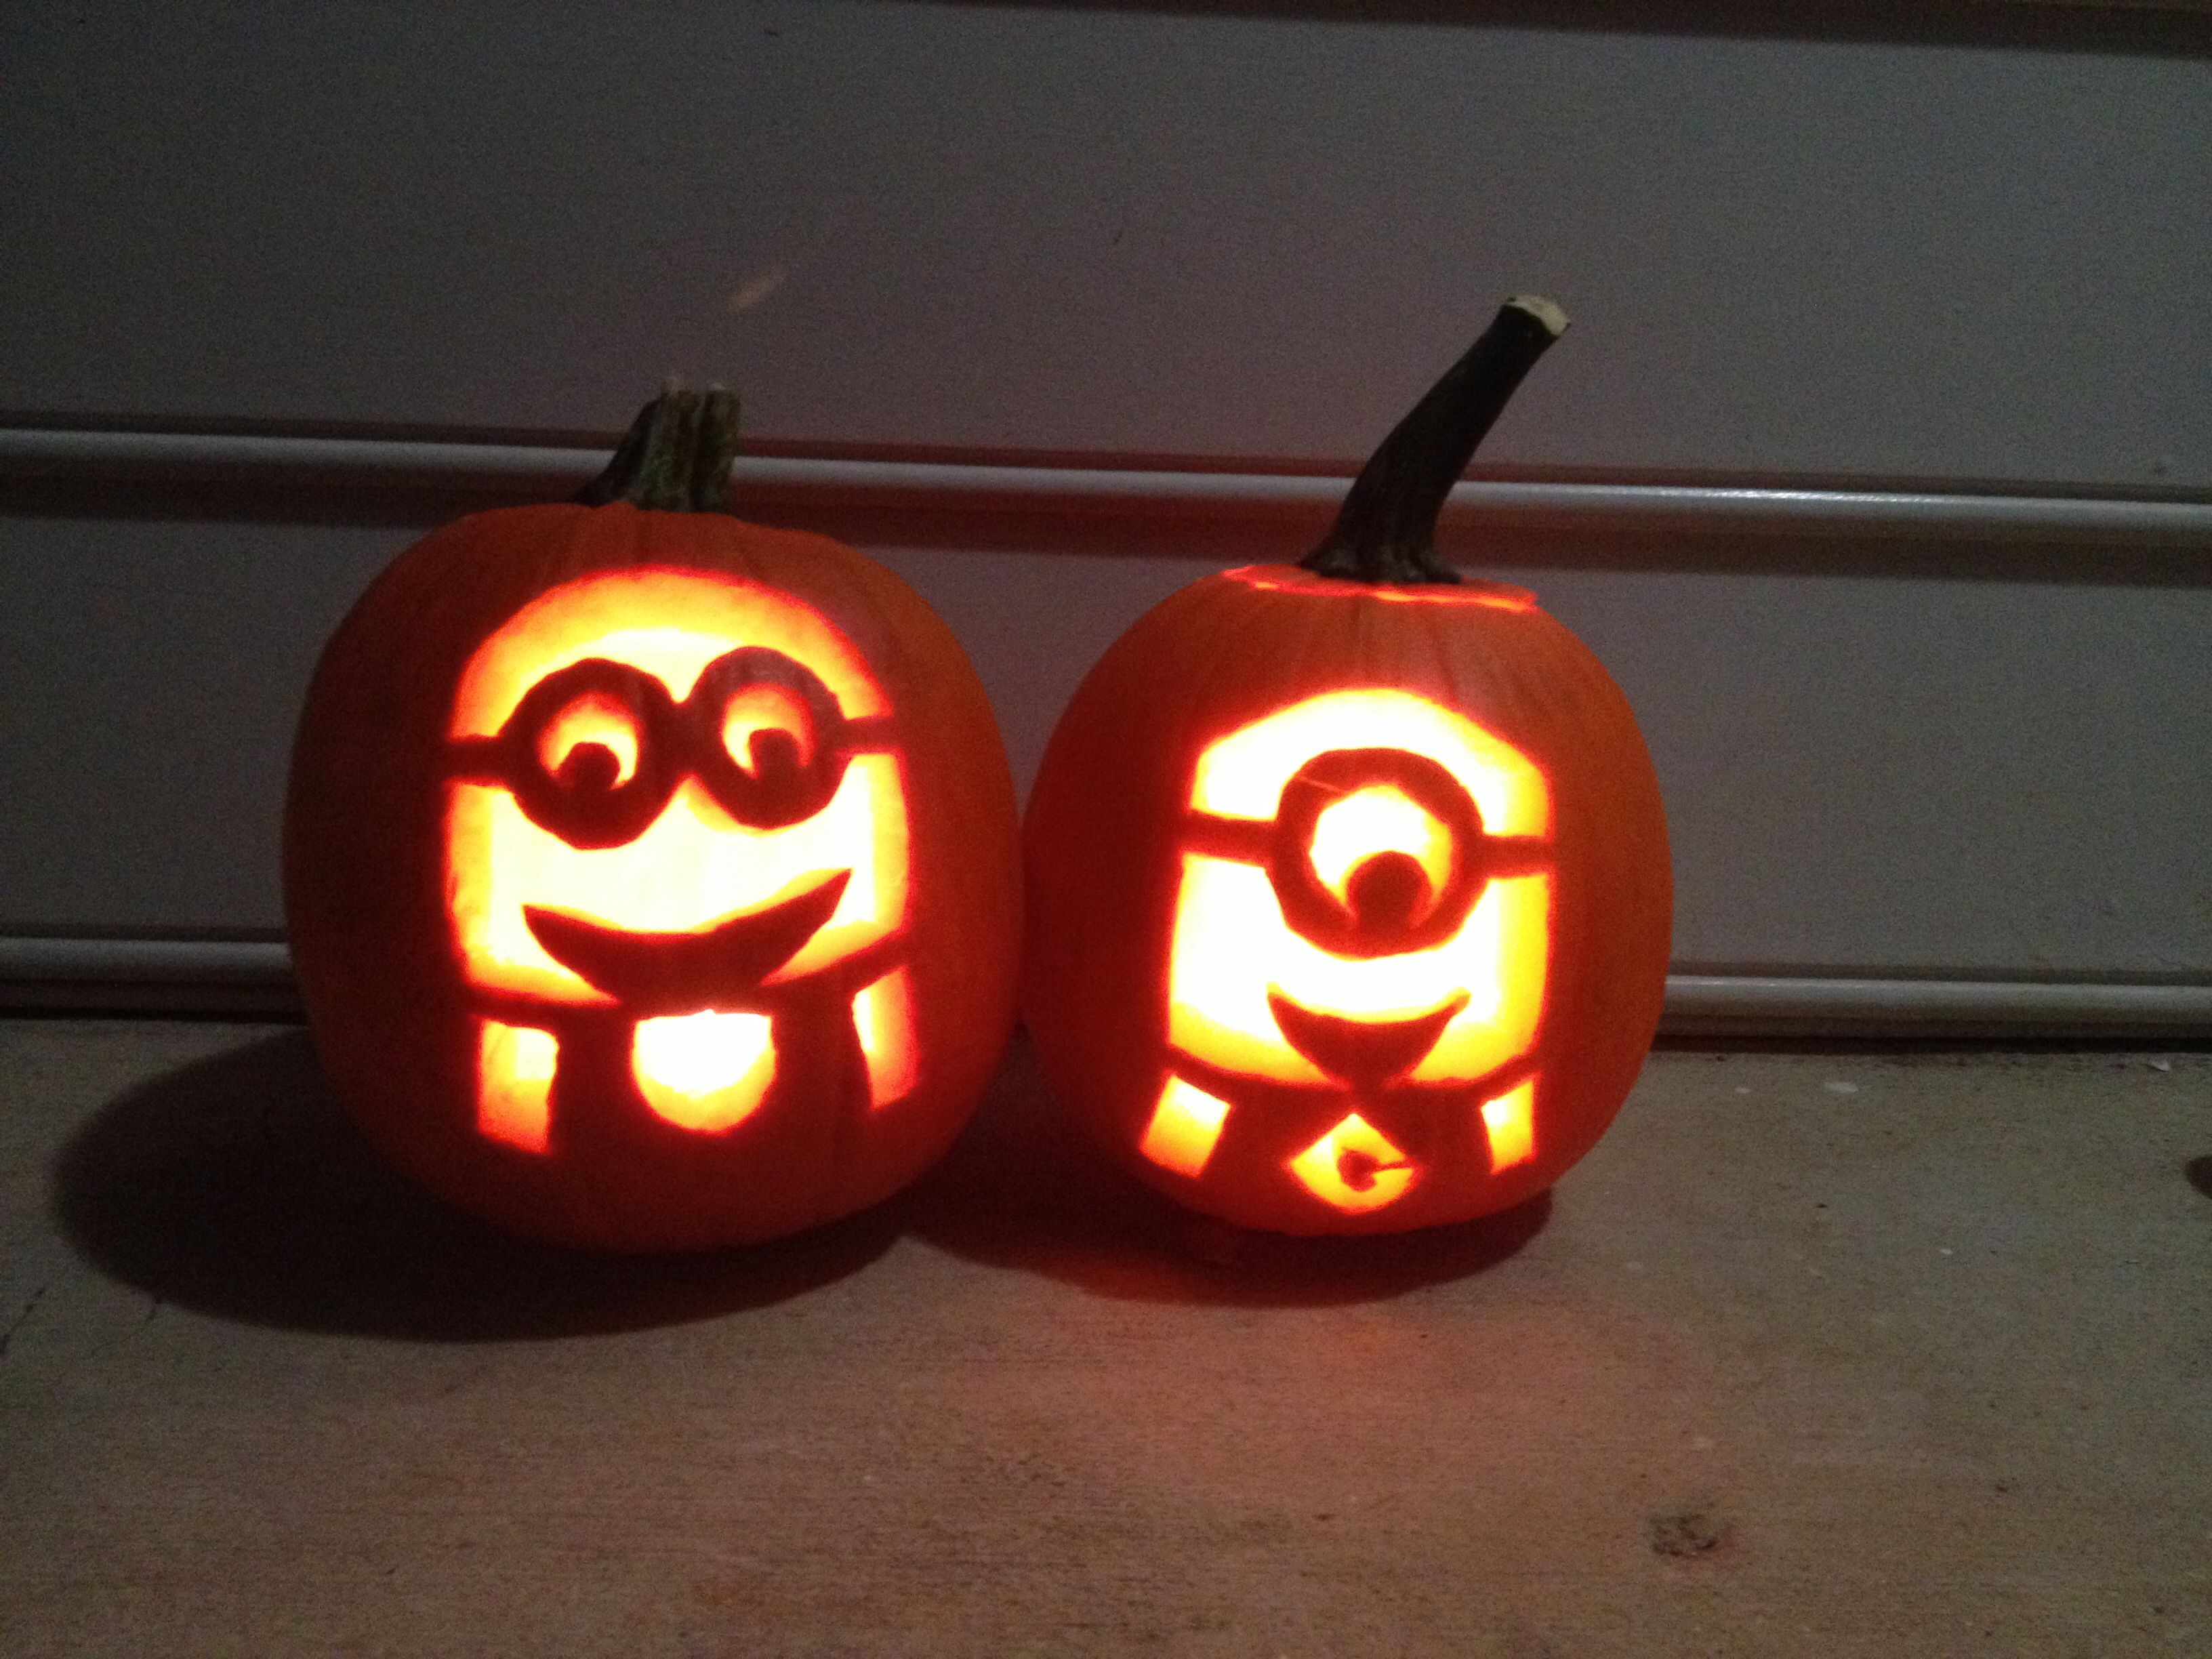 Minion Pumpkin Carvings From Despicable Me Making The One On The Right For My Granddaughter Today Minion Pumpkin Carving Pumpkin Carving Minion Pumpkin